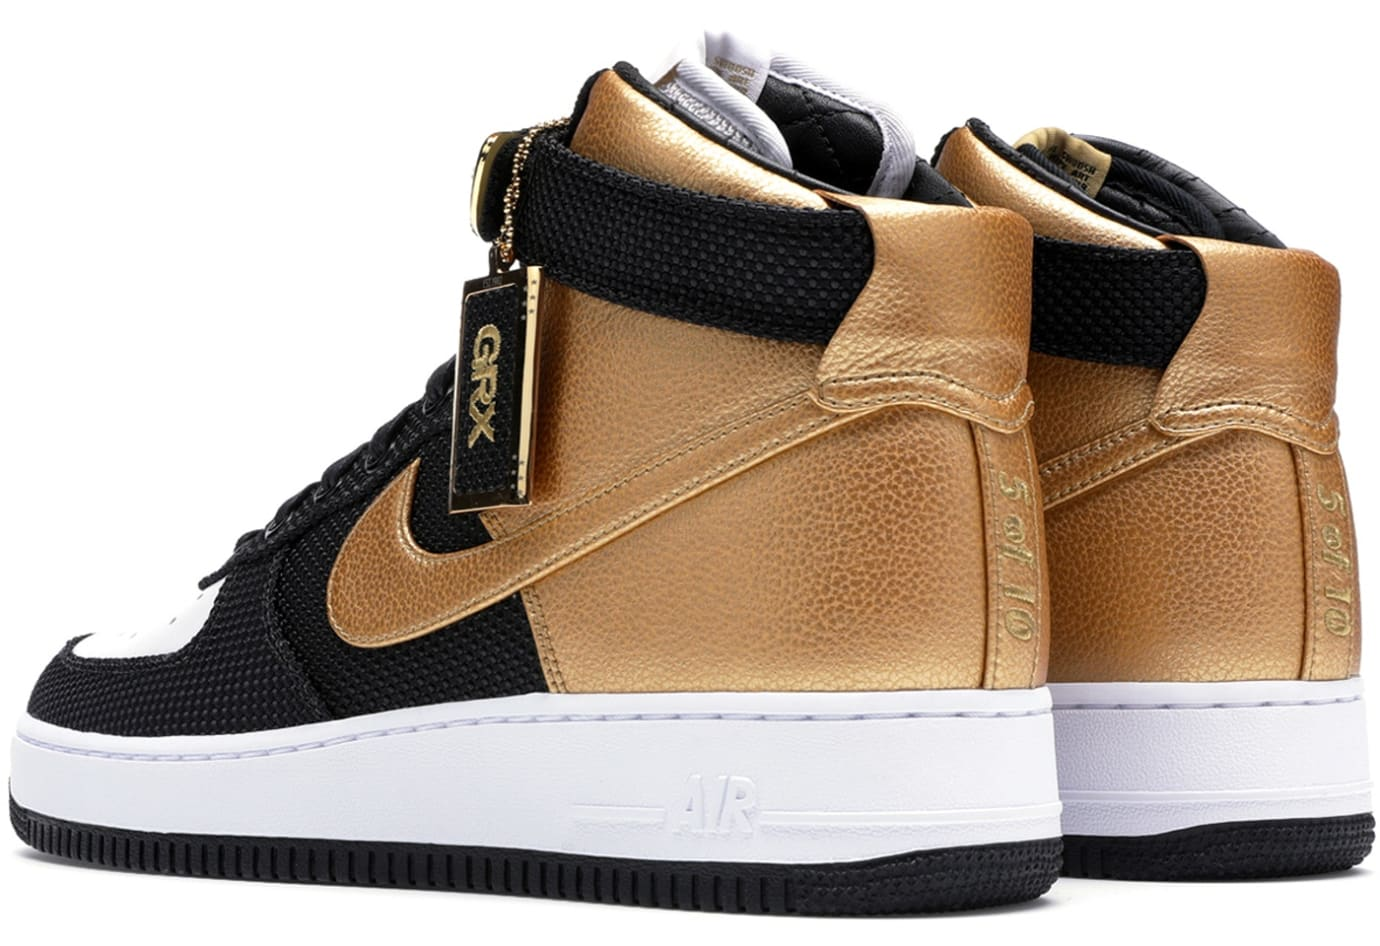 goldRush Rally x Nike Air Force 1 Bespoke (Heel Left)